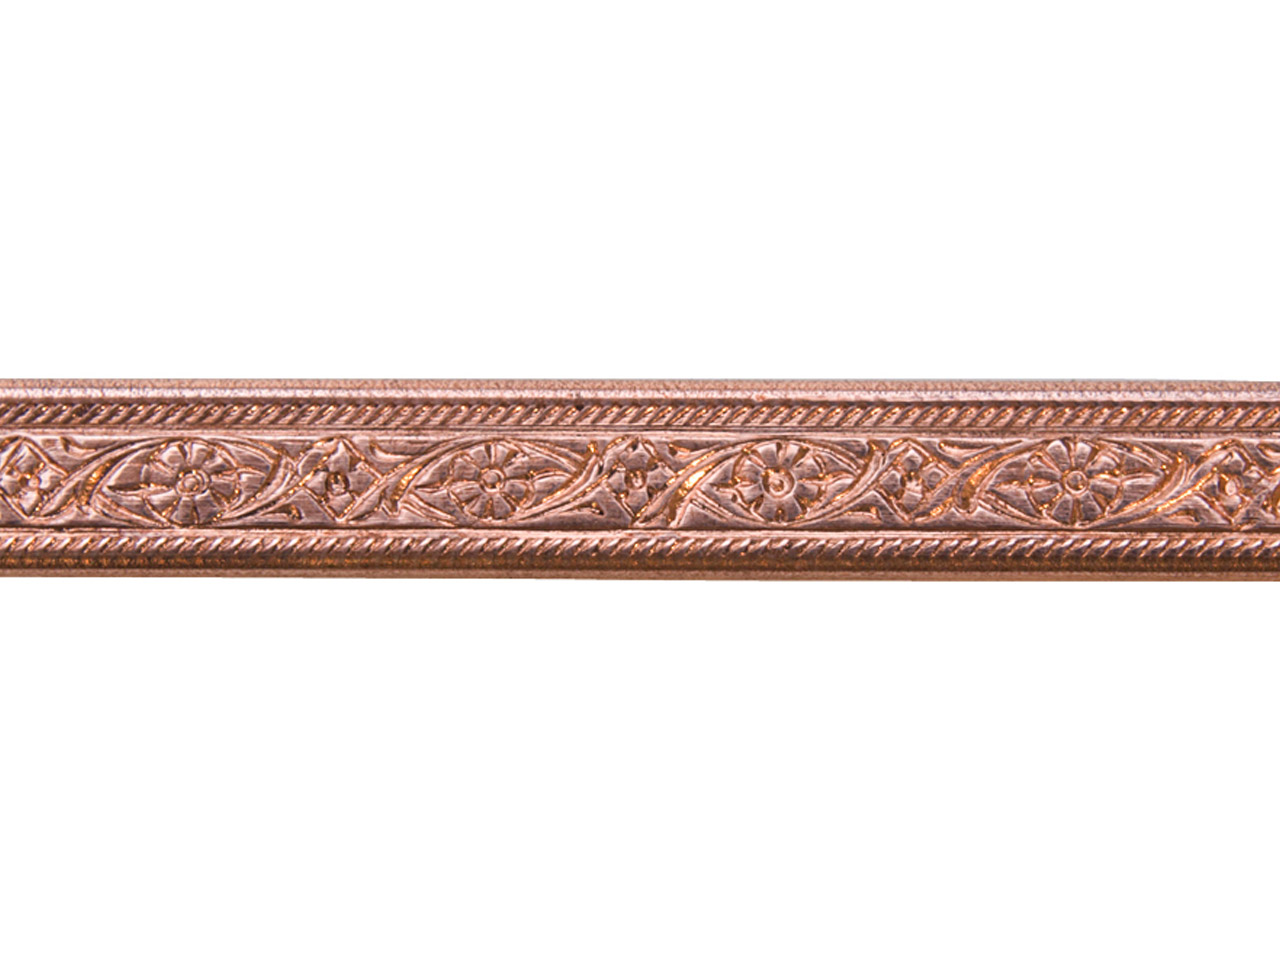 Copper Mini Floral Patterned Wire  1.4mm X 5.2mm X 910mm